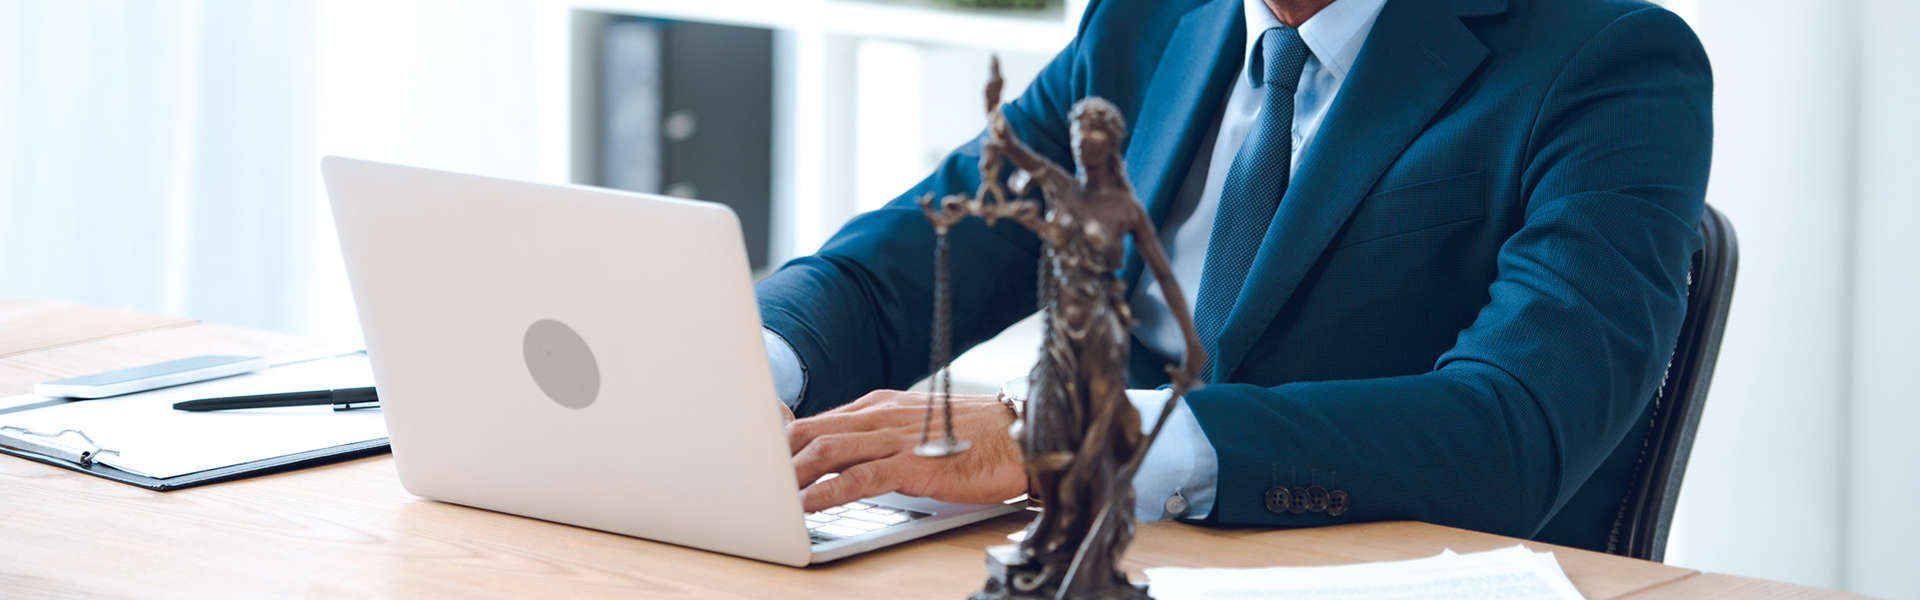 Find a legal content writer